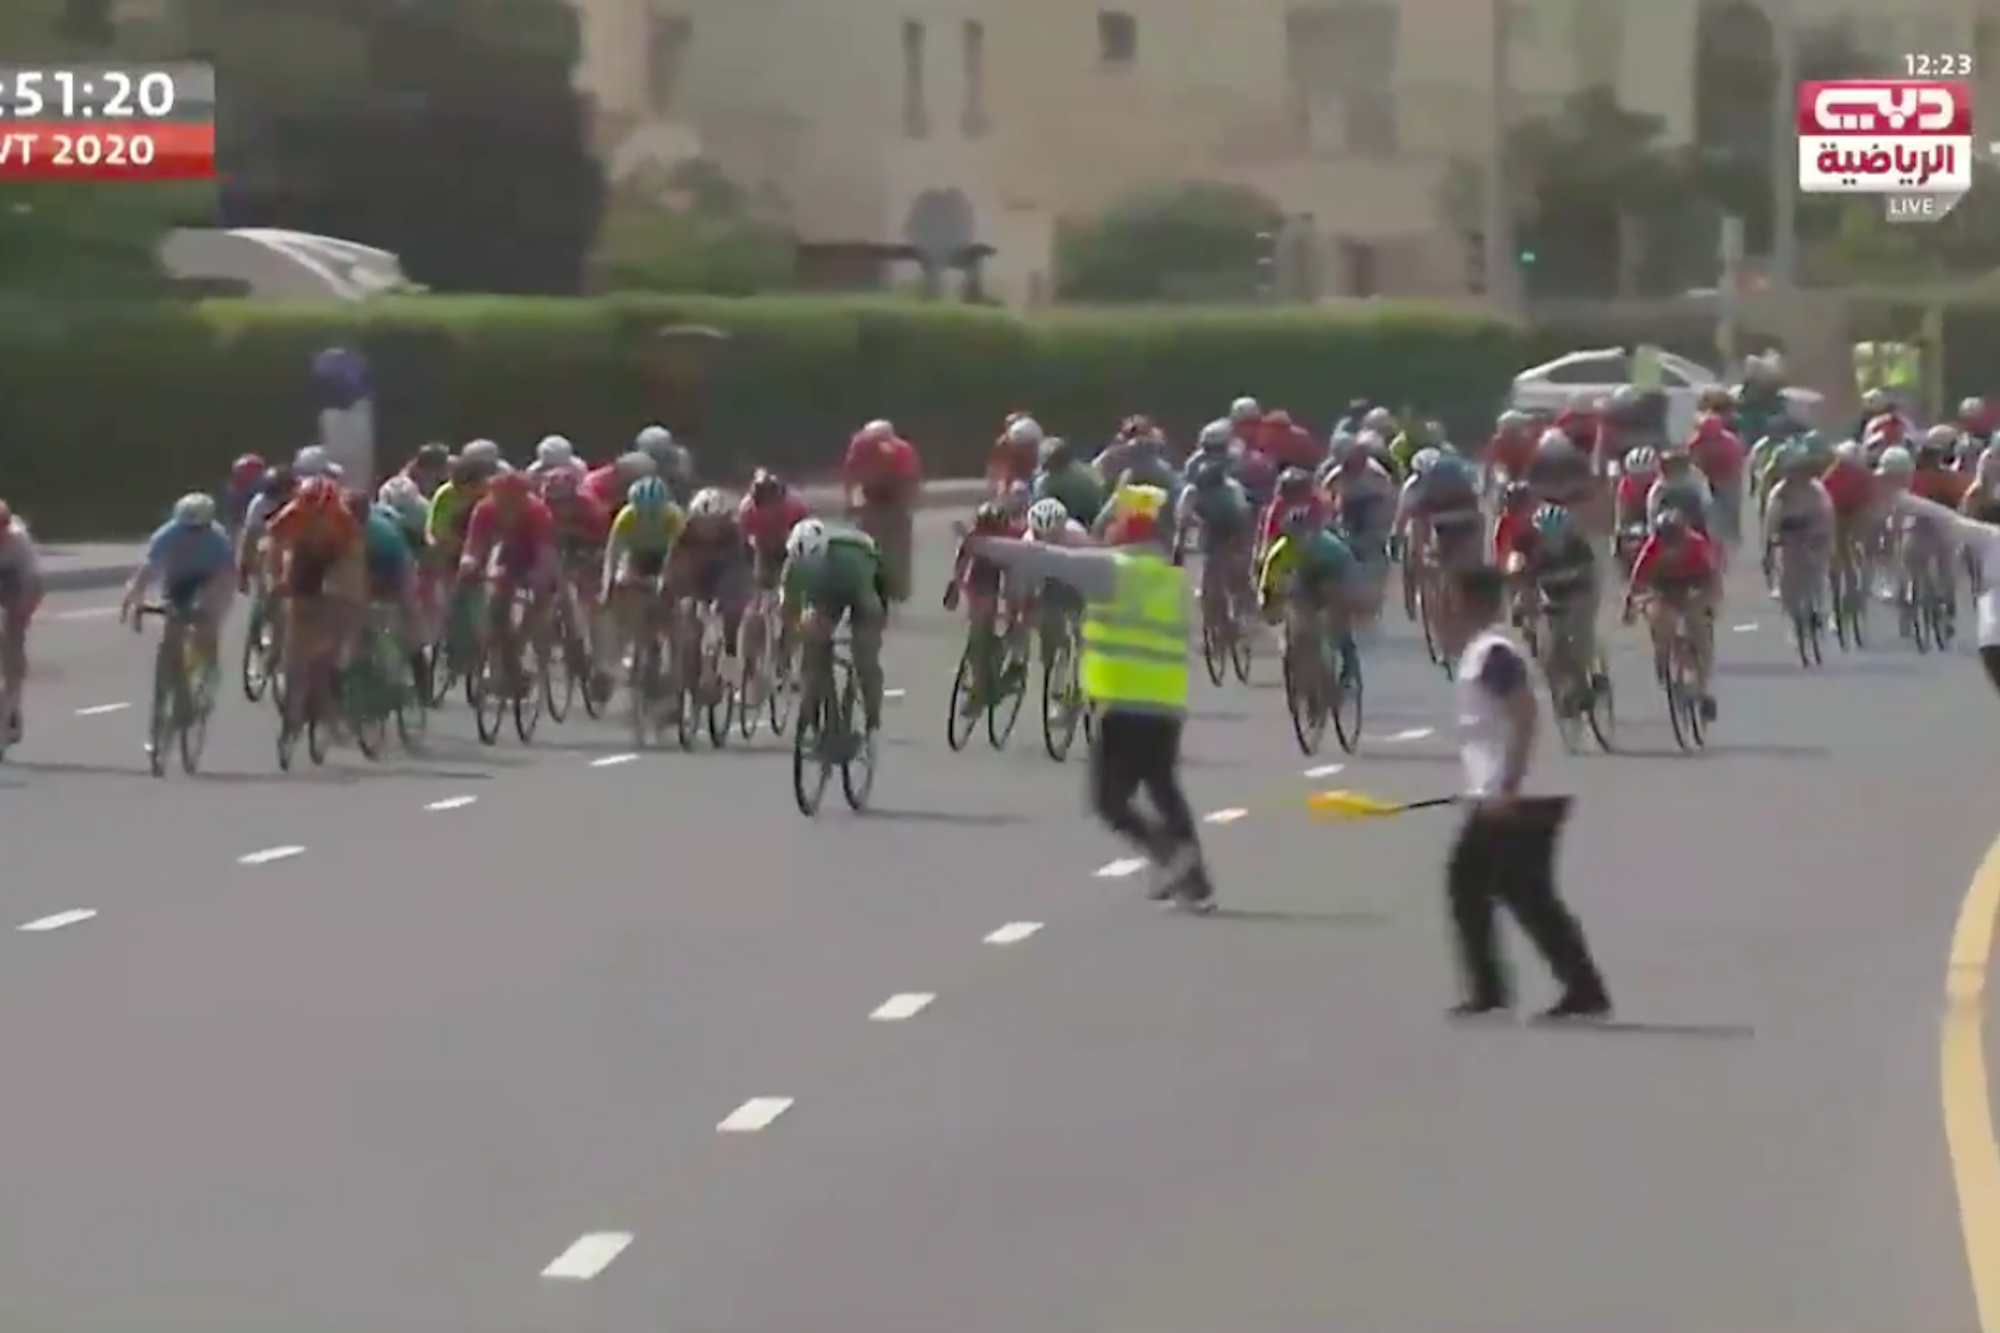 Riders avoid high-speed crash at barely-visible finish line in Dubai Women's Tour - Cycling Weekly